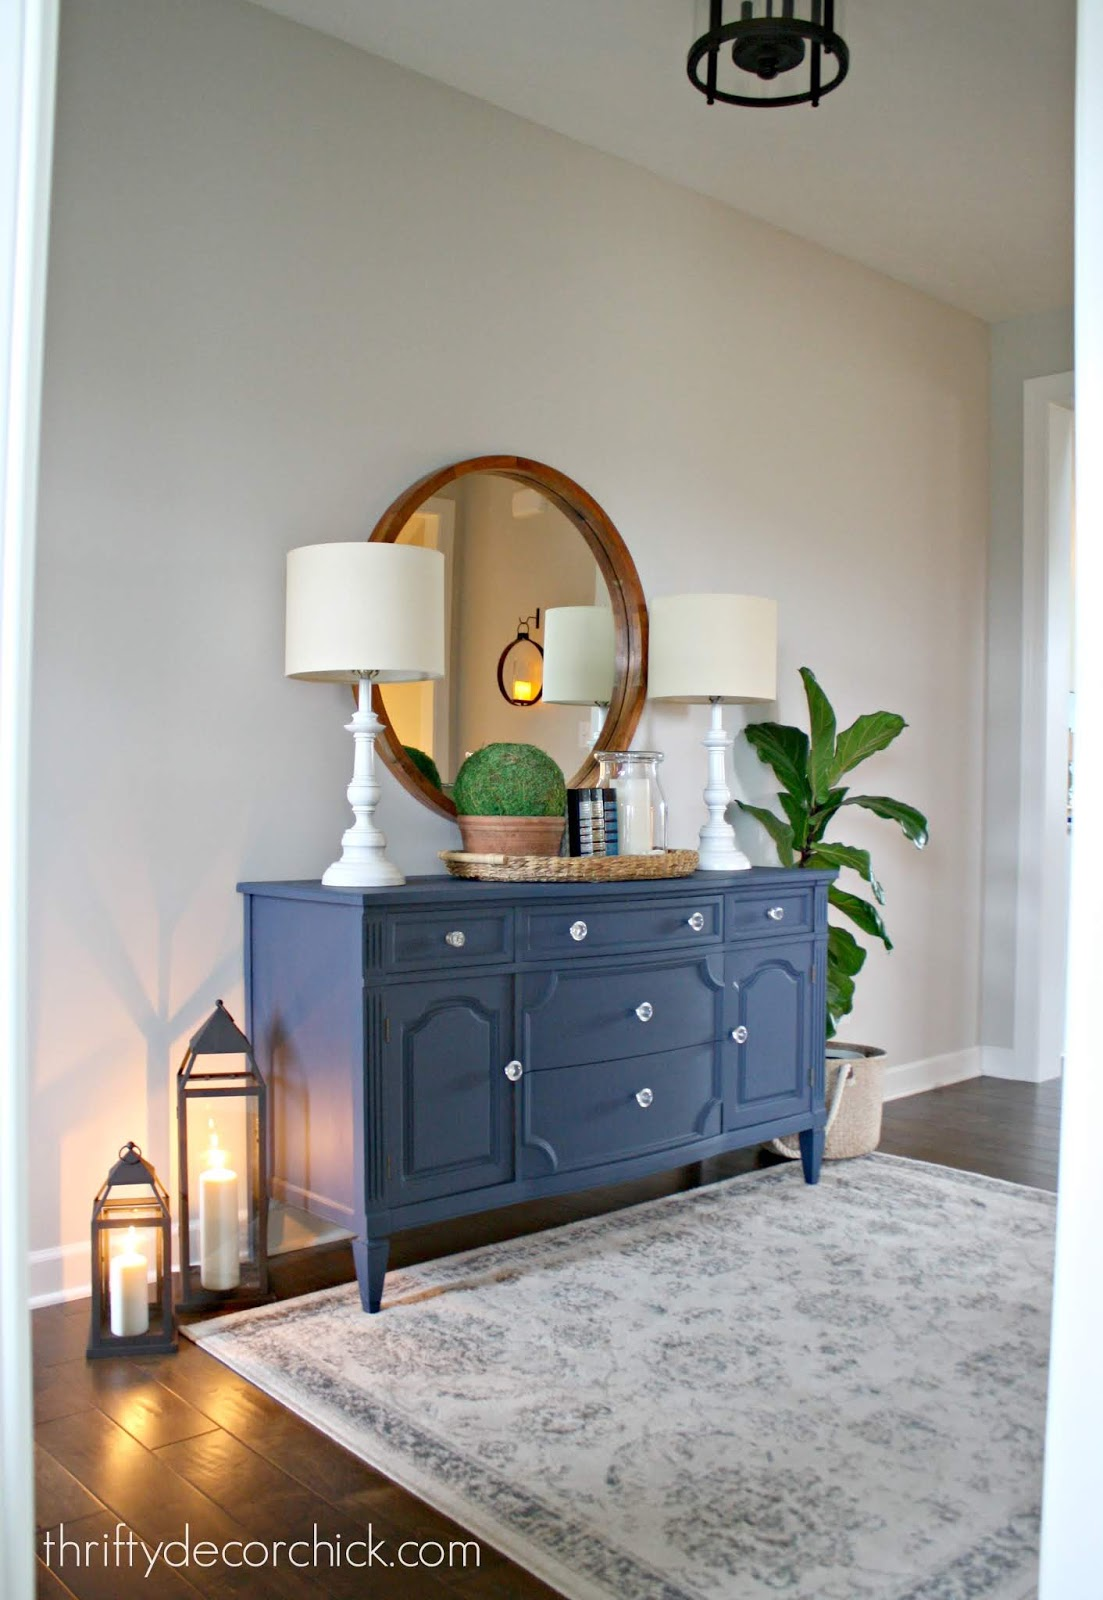 Dresser in foyer with lamps